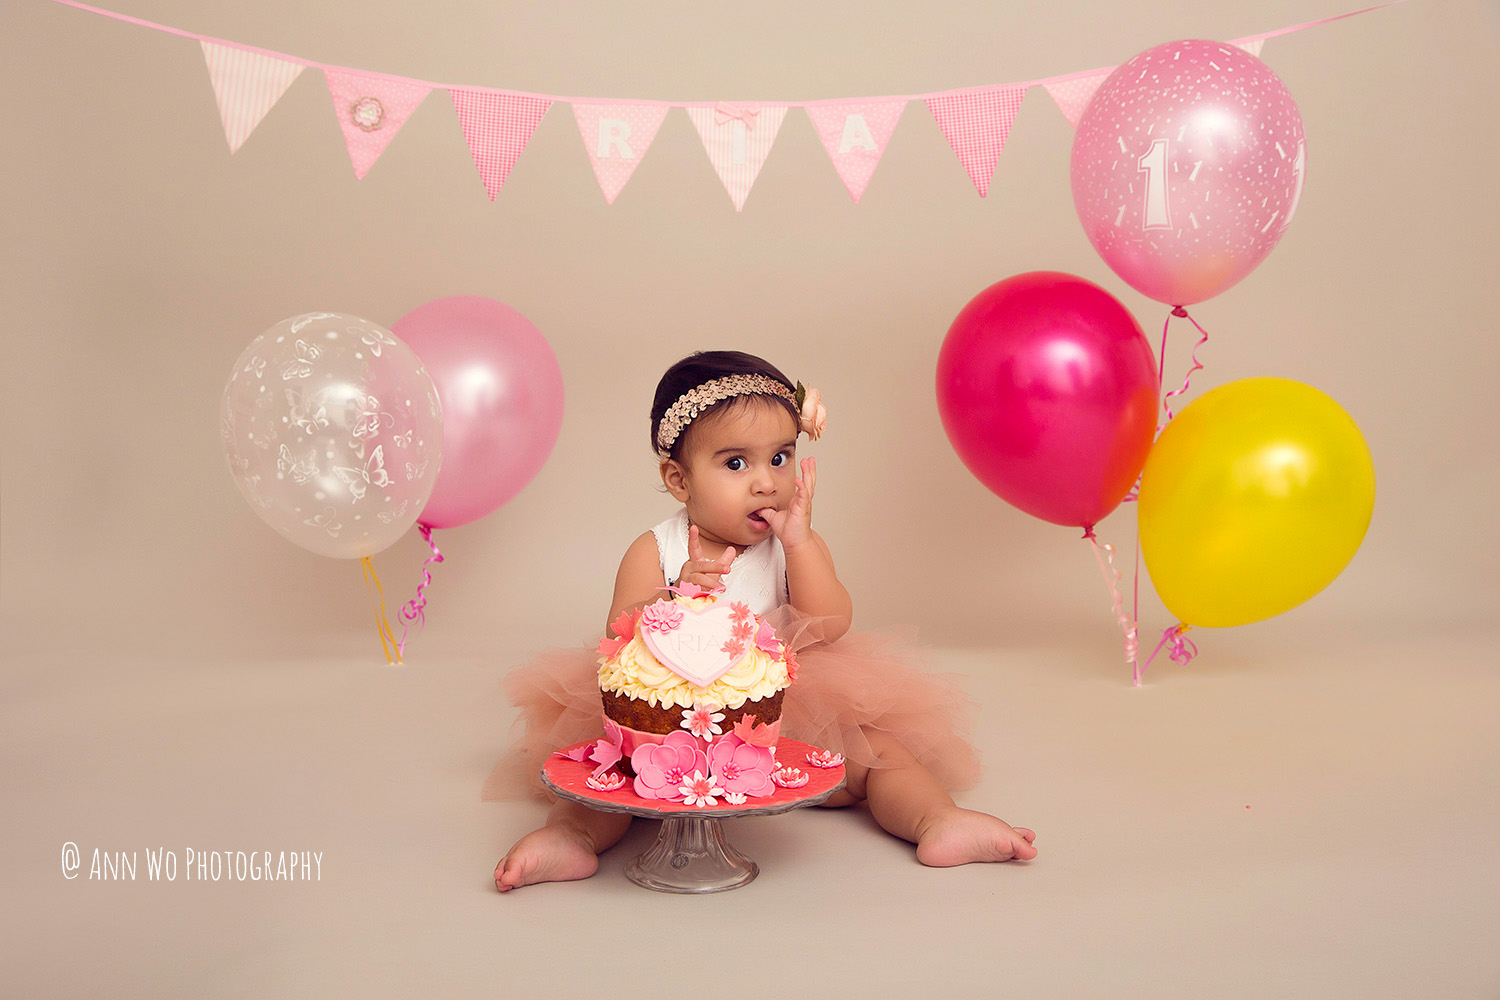 cake-smash-ria-london-baby-photographer04.jpg